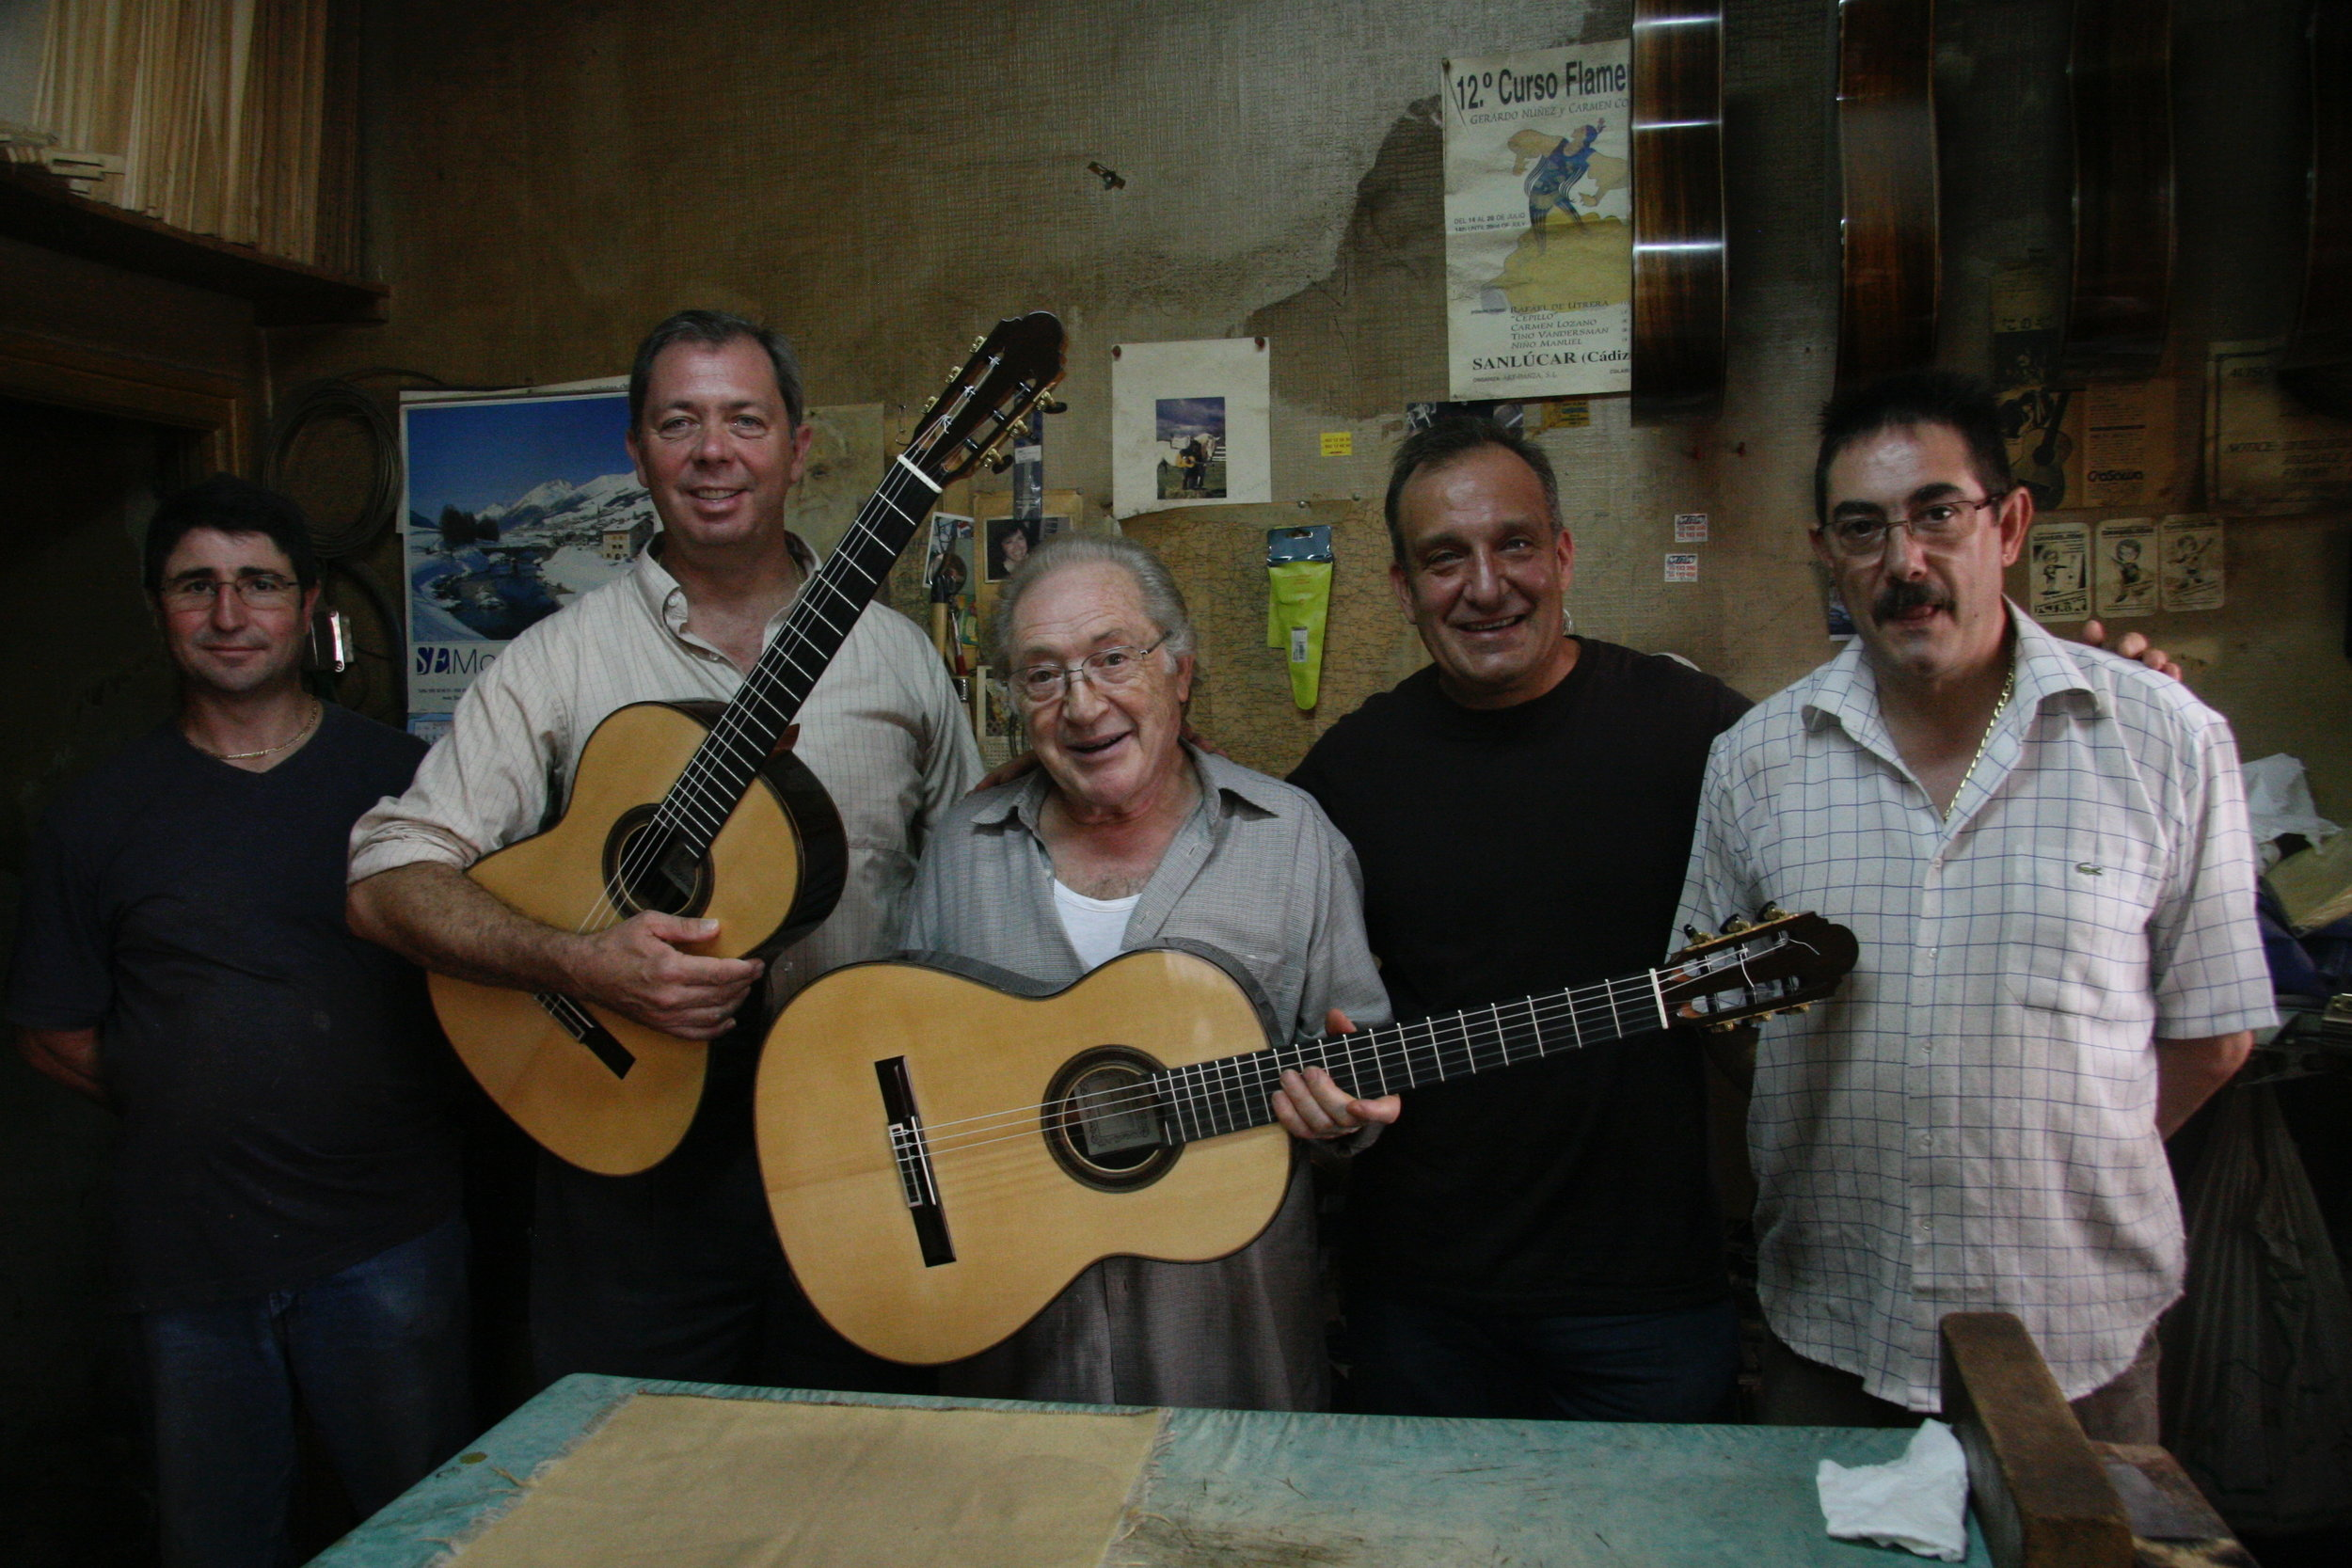 With master luthier Antonio Marîn Montero  Granada, Spain, September 2008   Left to right: Pepe Marín, me, Antonio Marín Montero, Stephen Marchionda, Jose Marín Plazuelo